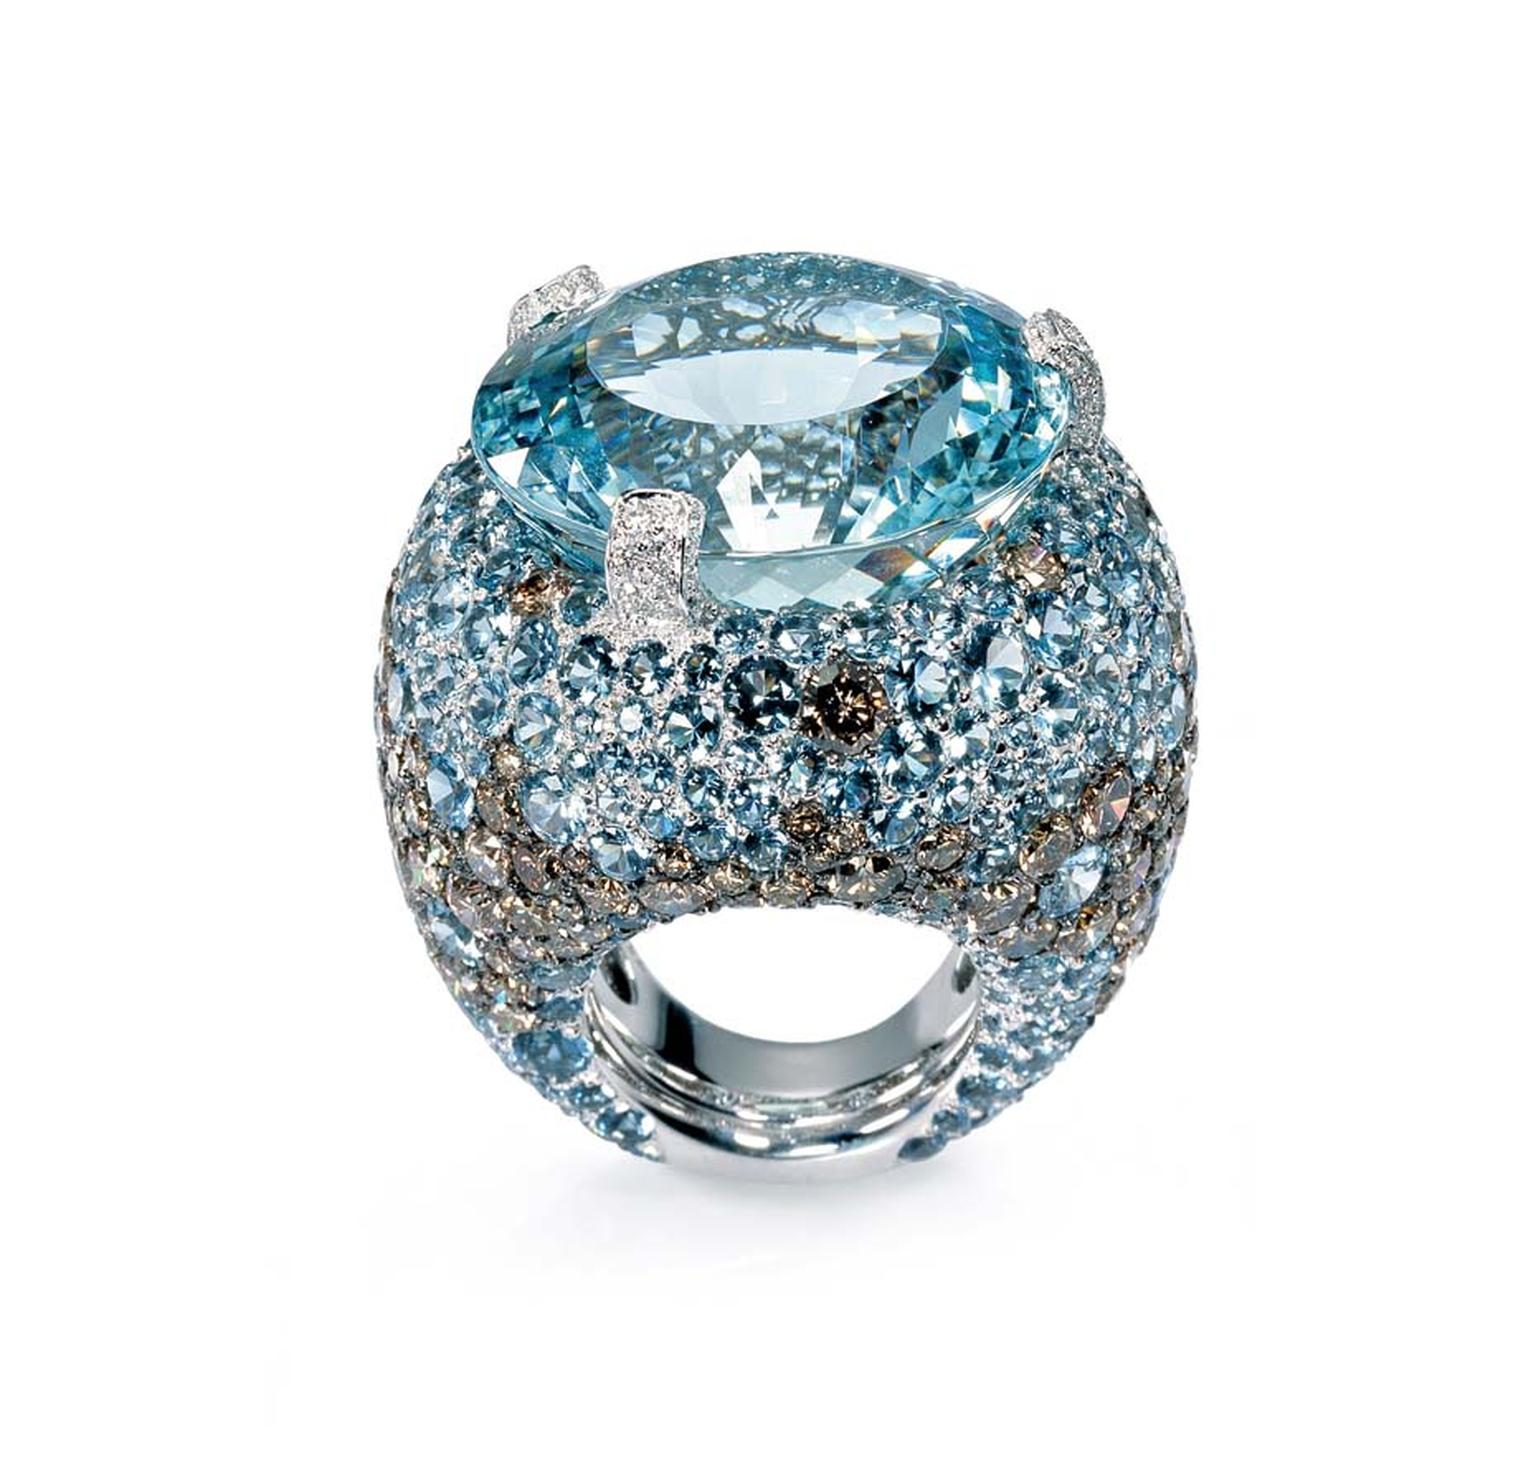 de GRISOGONO aquamarine ring with diamonds from the Melody of Colours collection, worn by Michelle Rodriguez at the Cannes Film Festival.